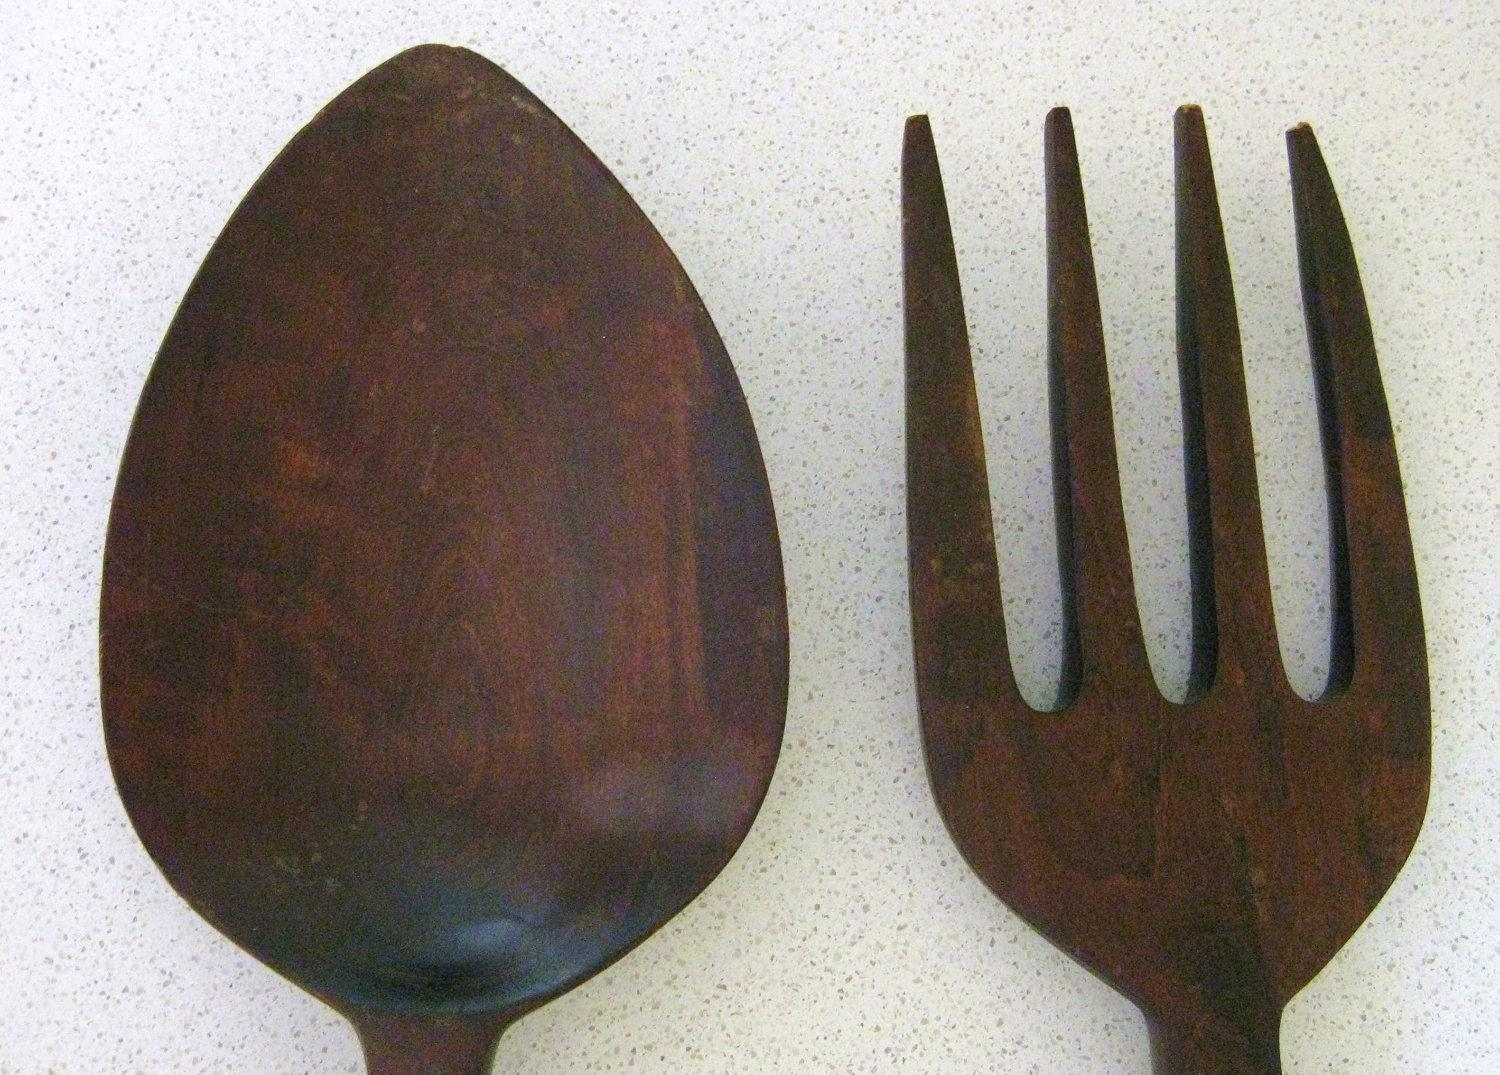 Bathroom Wall Decorations: Fork And Spoon Wall Decor Regarding Giant Fork And Spoon Wall Art (Image 2 of 20)